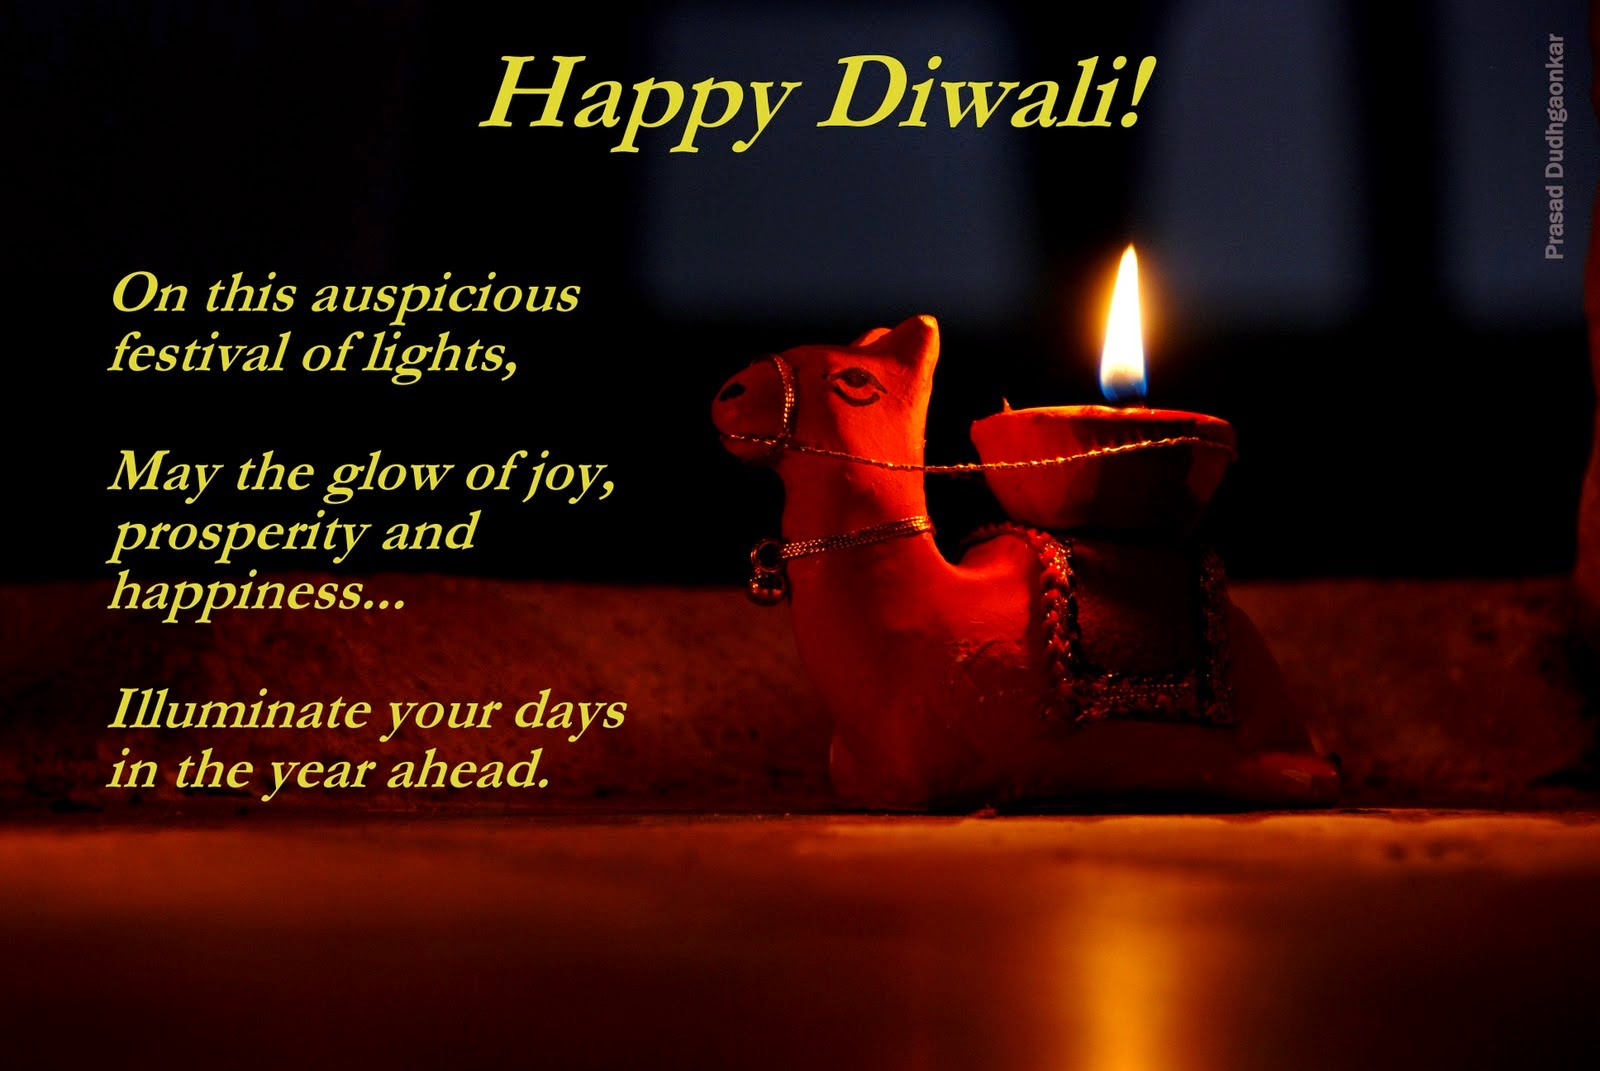 Deepavali essay whatsapp diwali status diwali quotes diwali whatsapp diwali status diwali quotes diwali greetings images happy diwali m4hsunfo